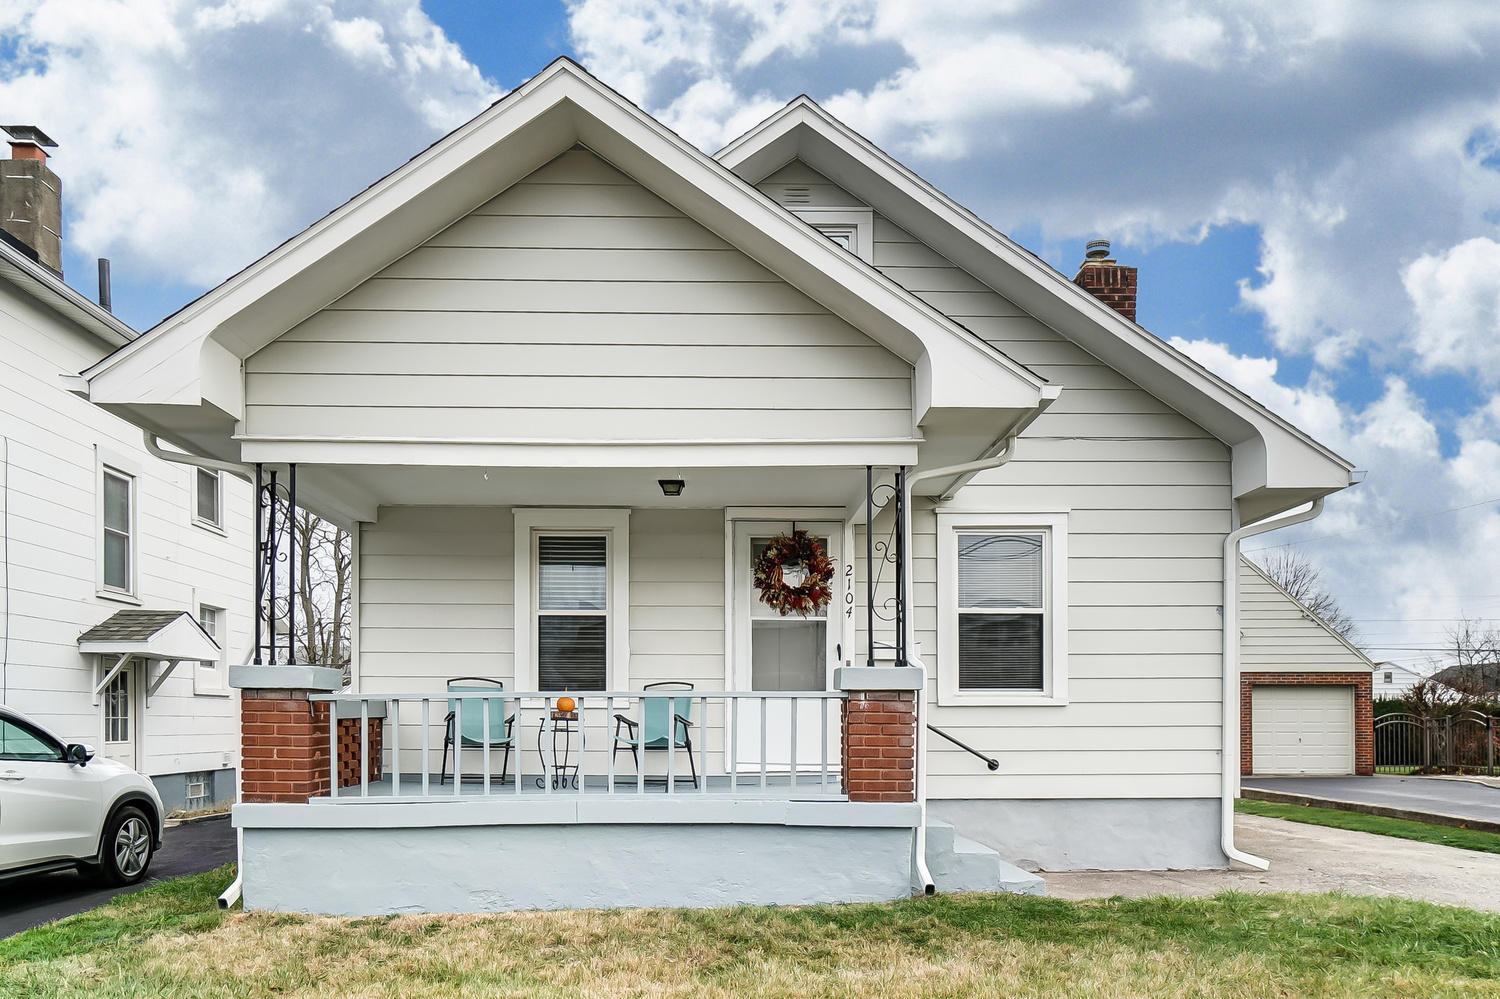 2104 Fauver Avenue Property Photo - Dayton, OH real estate listing